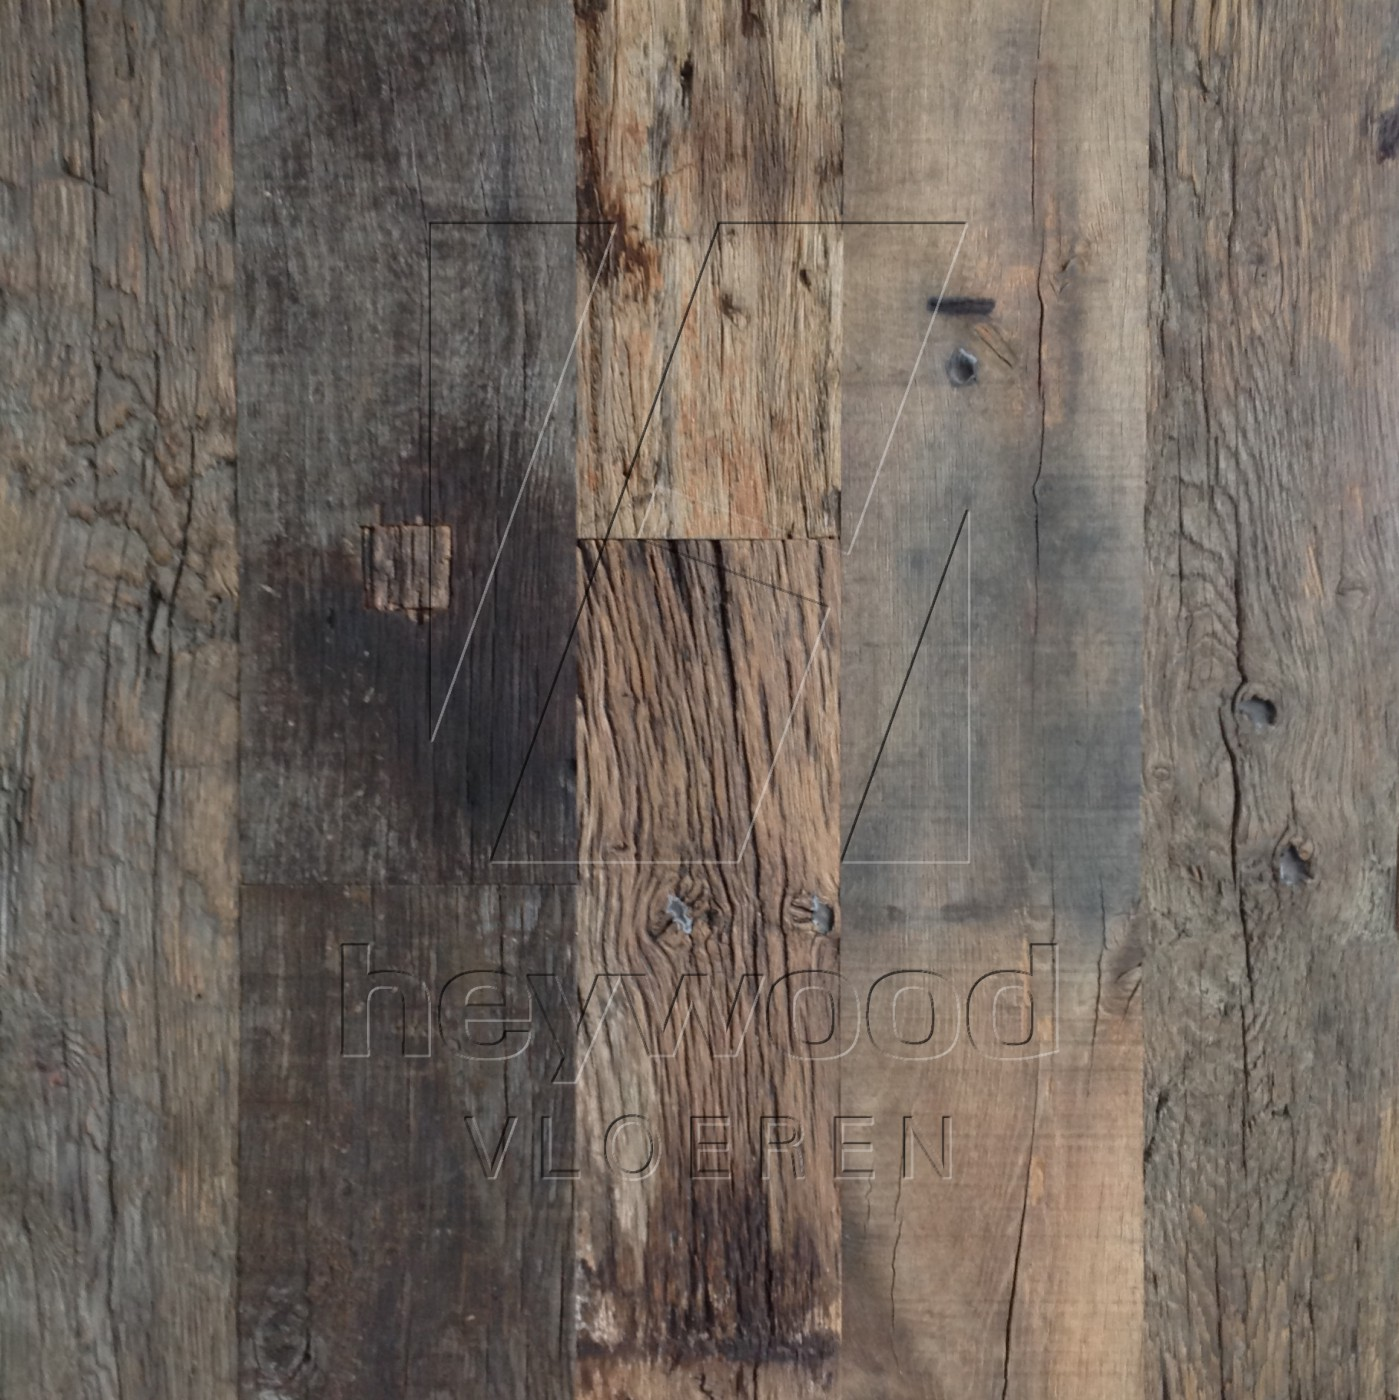 Bordeaux Plank (mixed widths, 80 years old Oak, Outside) in Plank OUTSIDES (authentic textured patina surface) of Old Reclaimed Wood